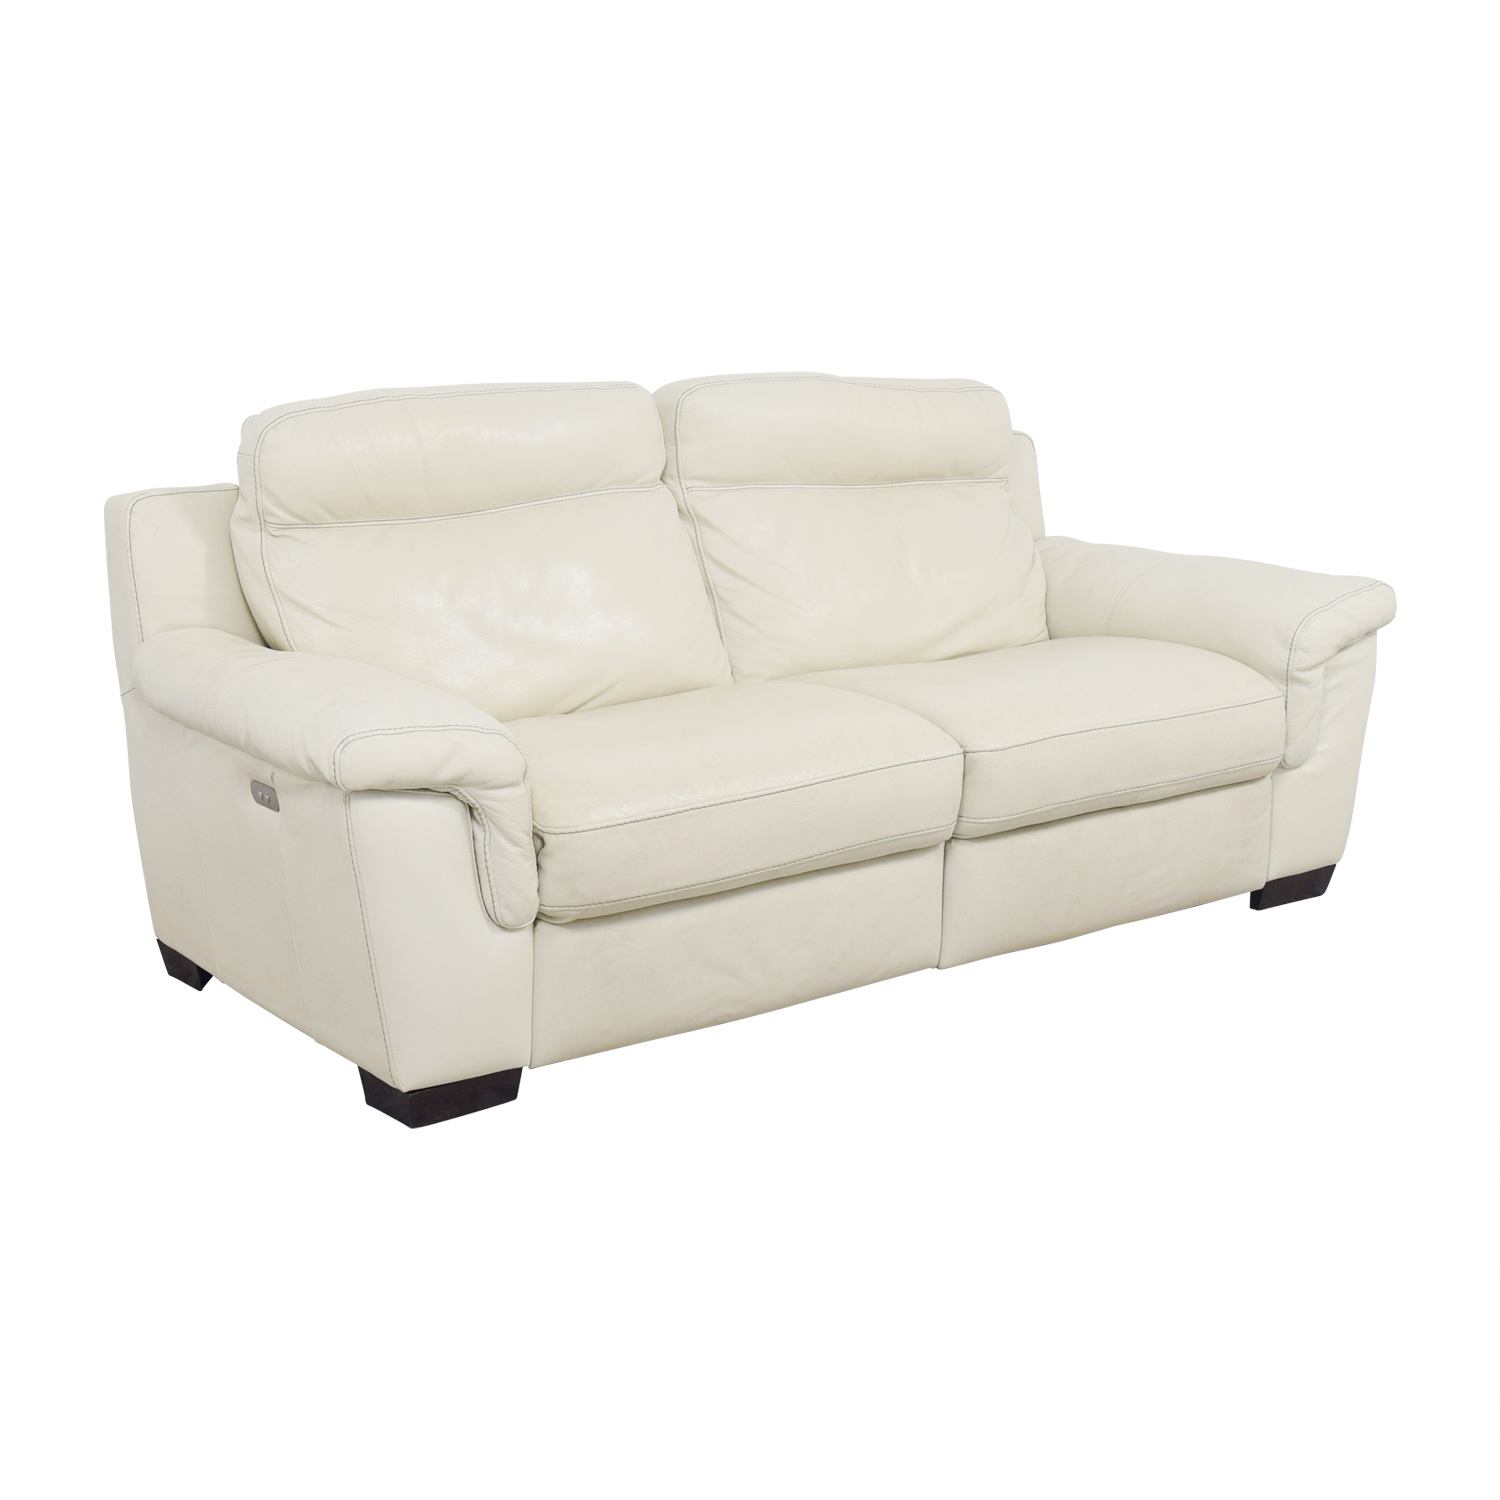 10 Best Collection Of Off White Leather Sofas: Macy's Macy's Off White Leather Recliner Sofa